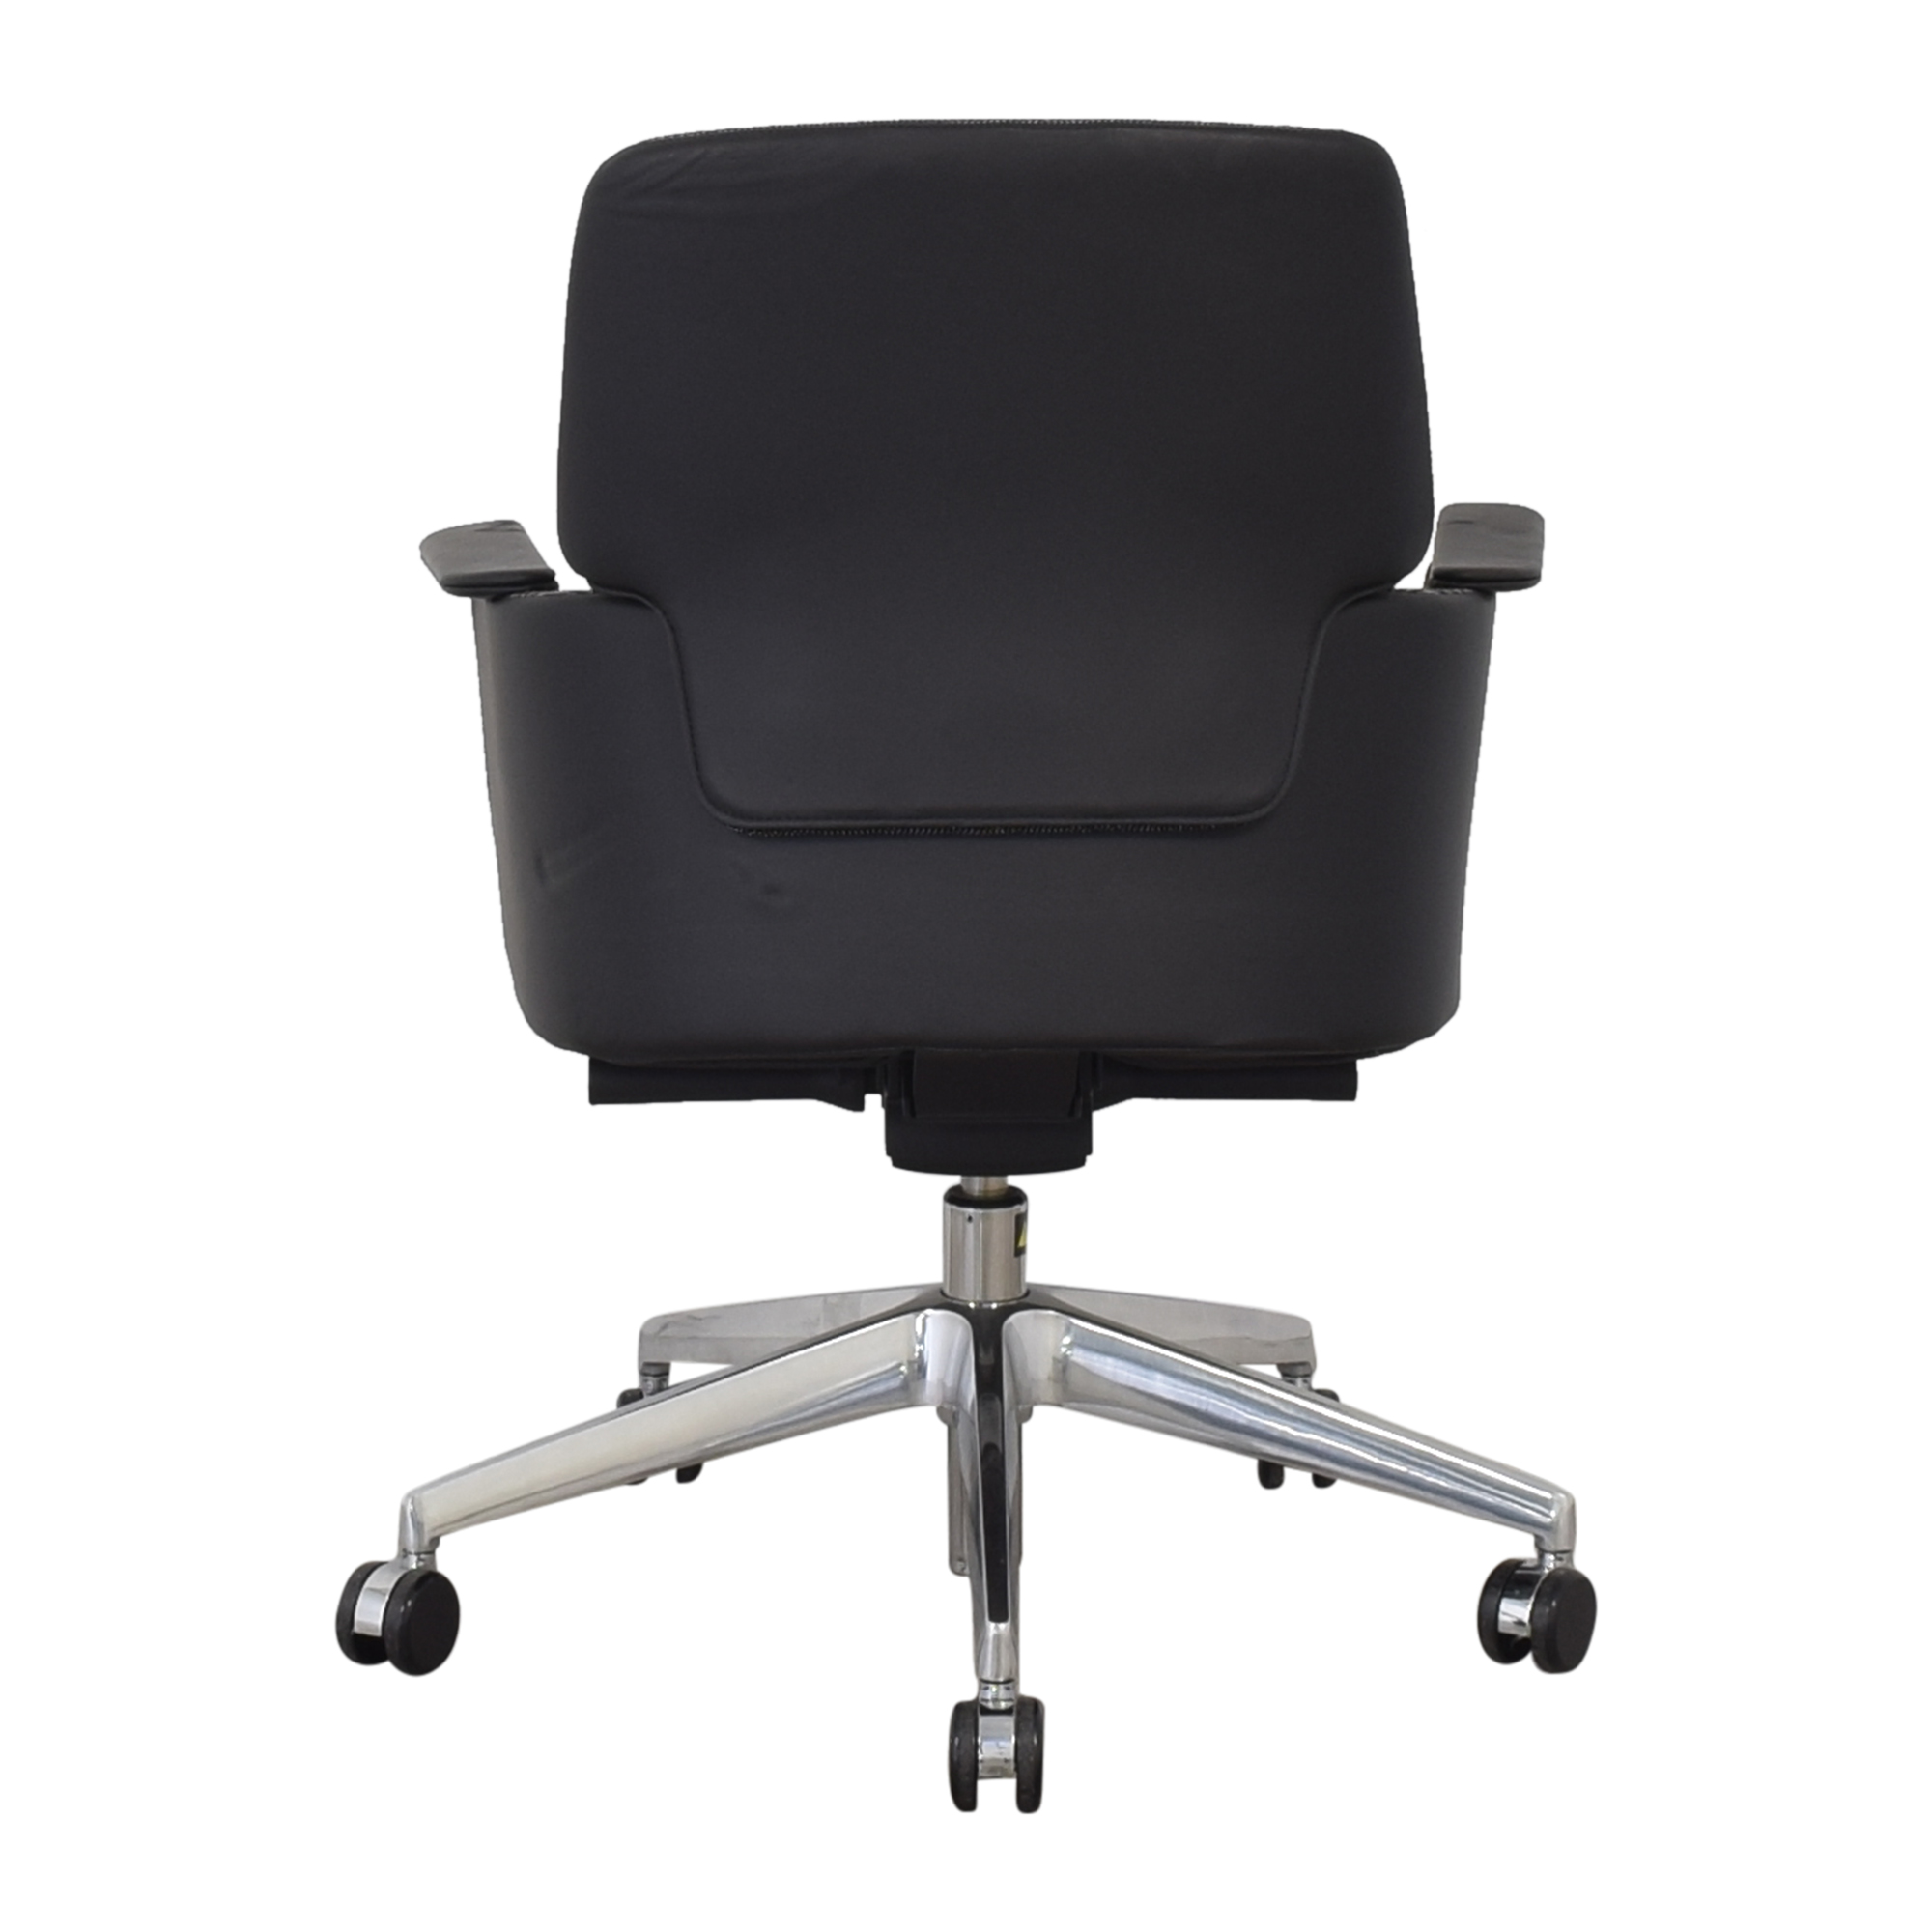 Koleksiyon Koleksiyon Tola Task Chair second hand